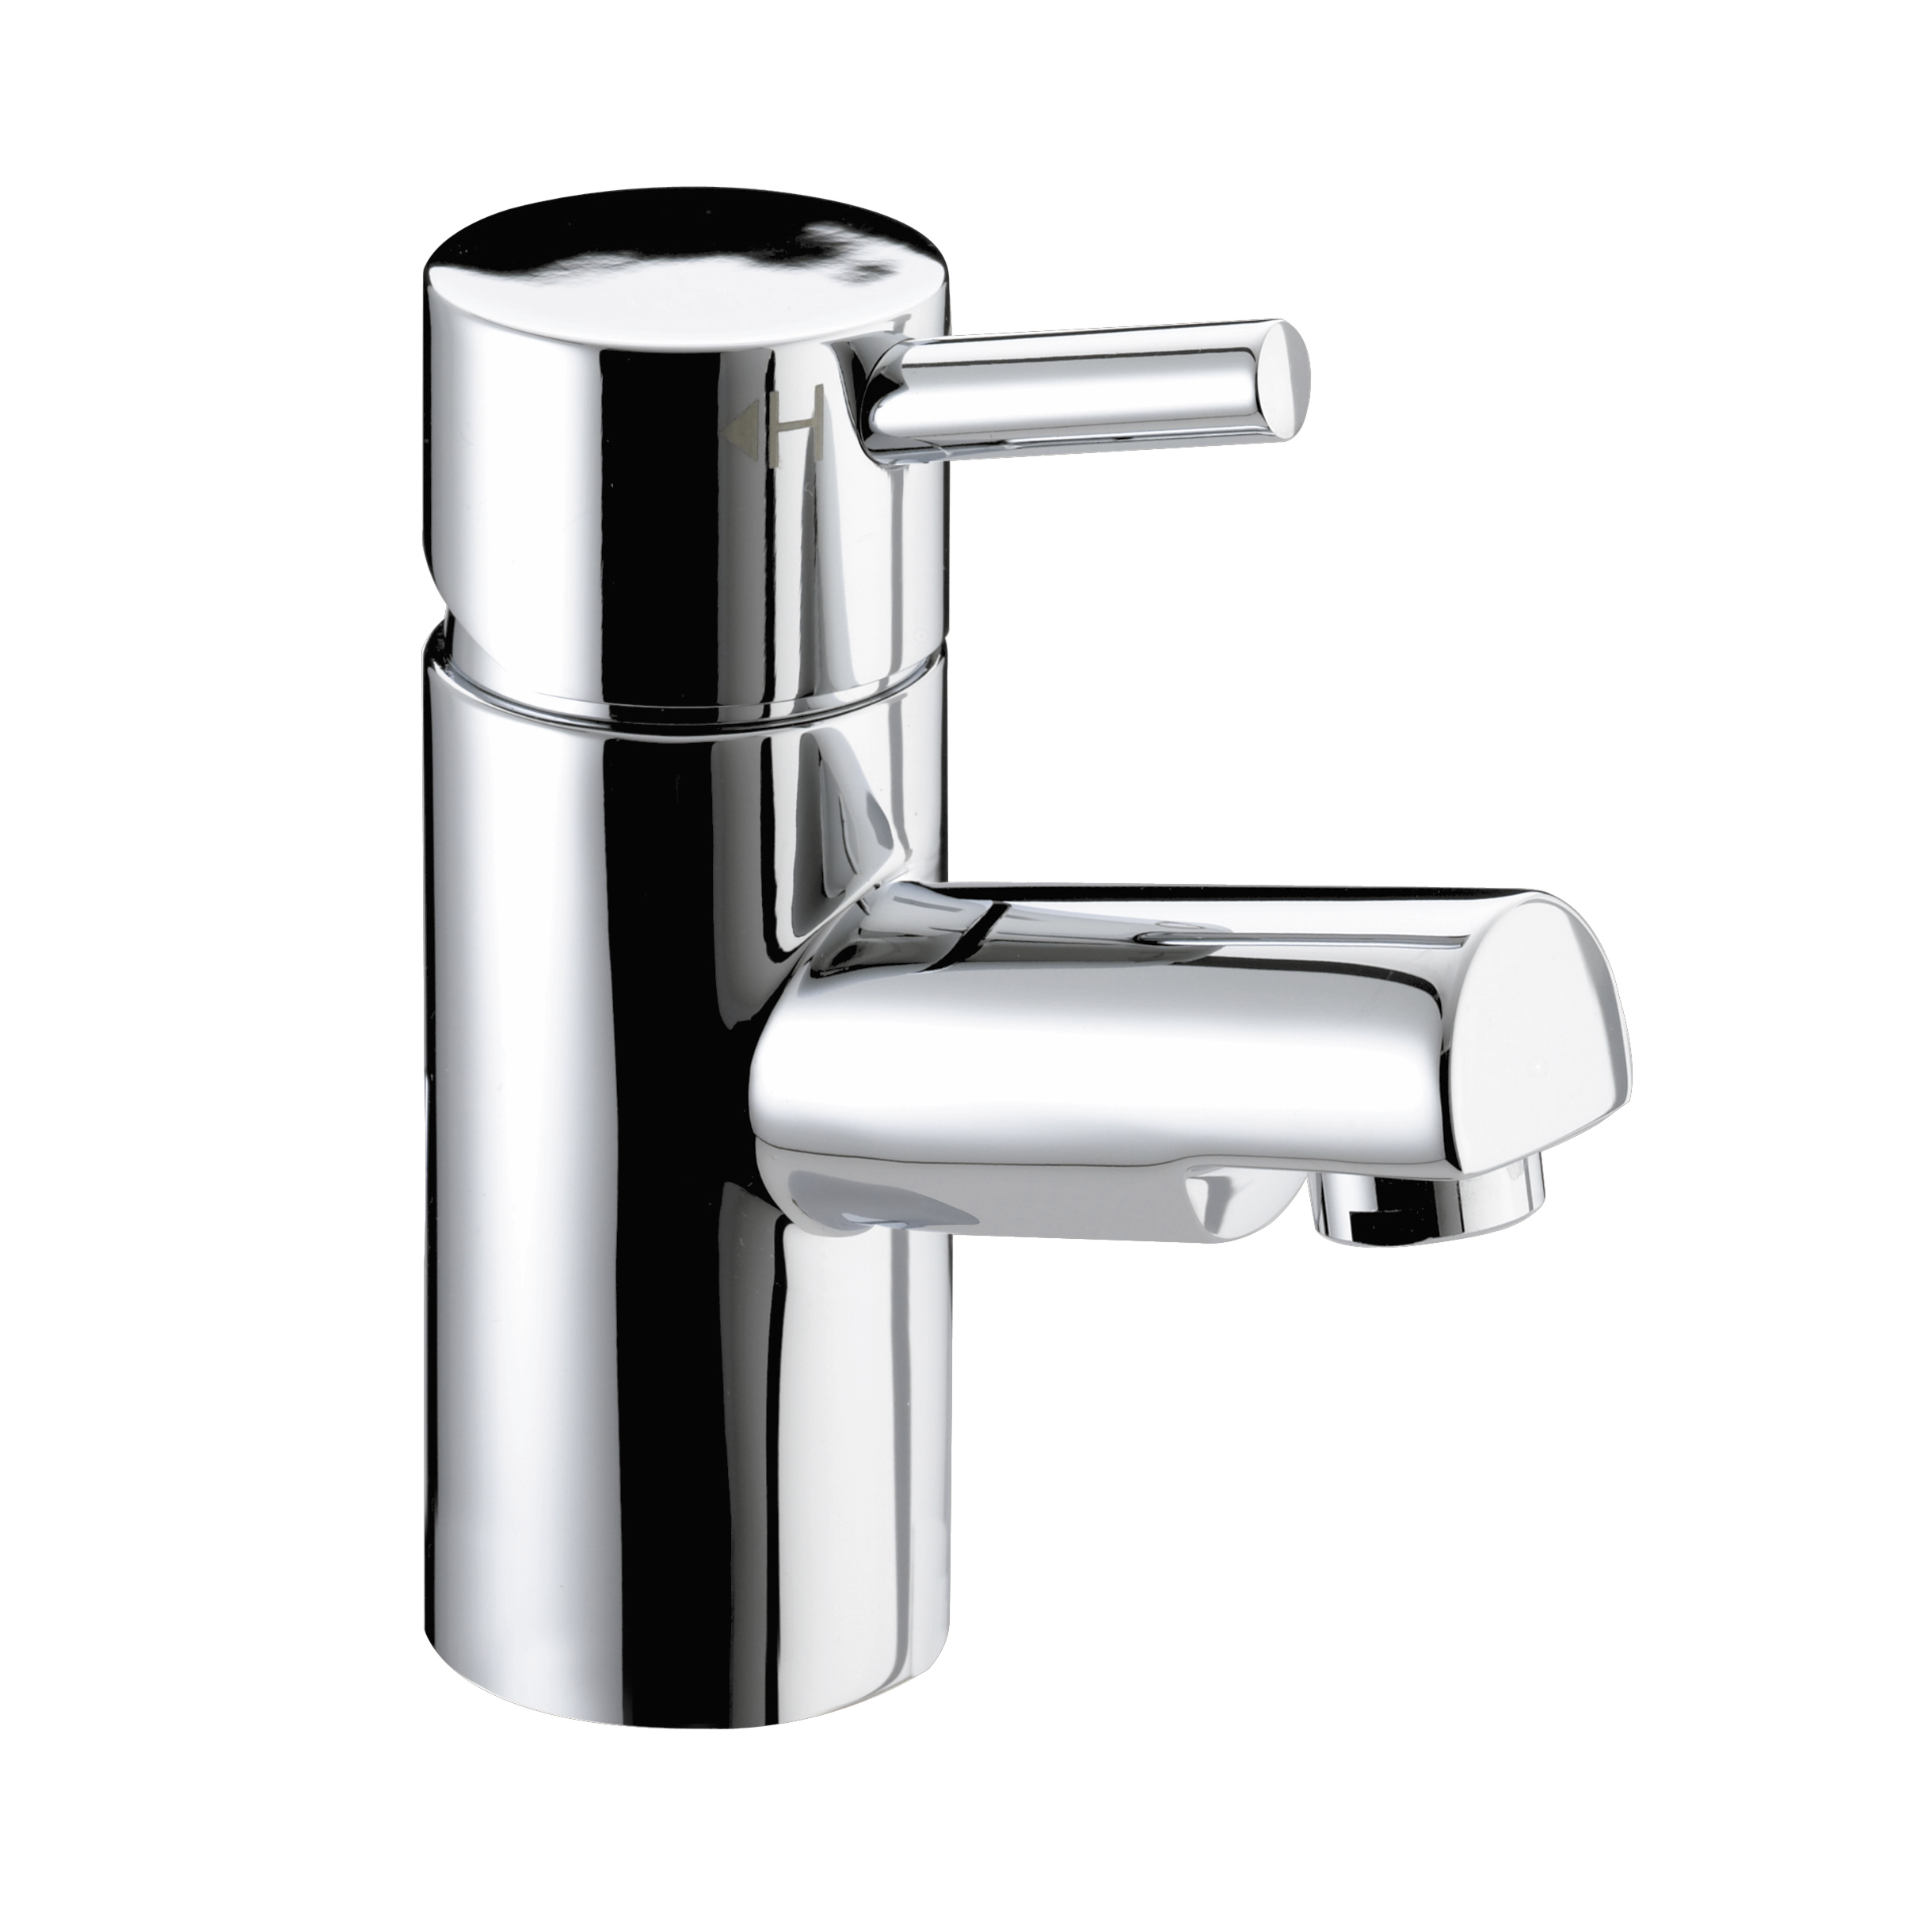 BRISTAN PRISM BASIN MIXER TAP CHROME (NO WASTE)